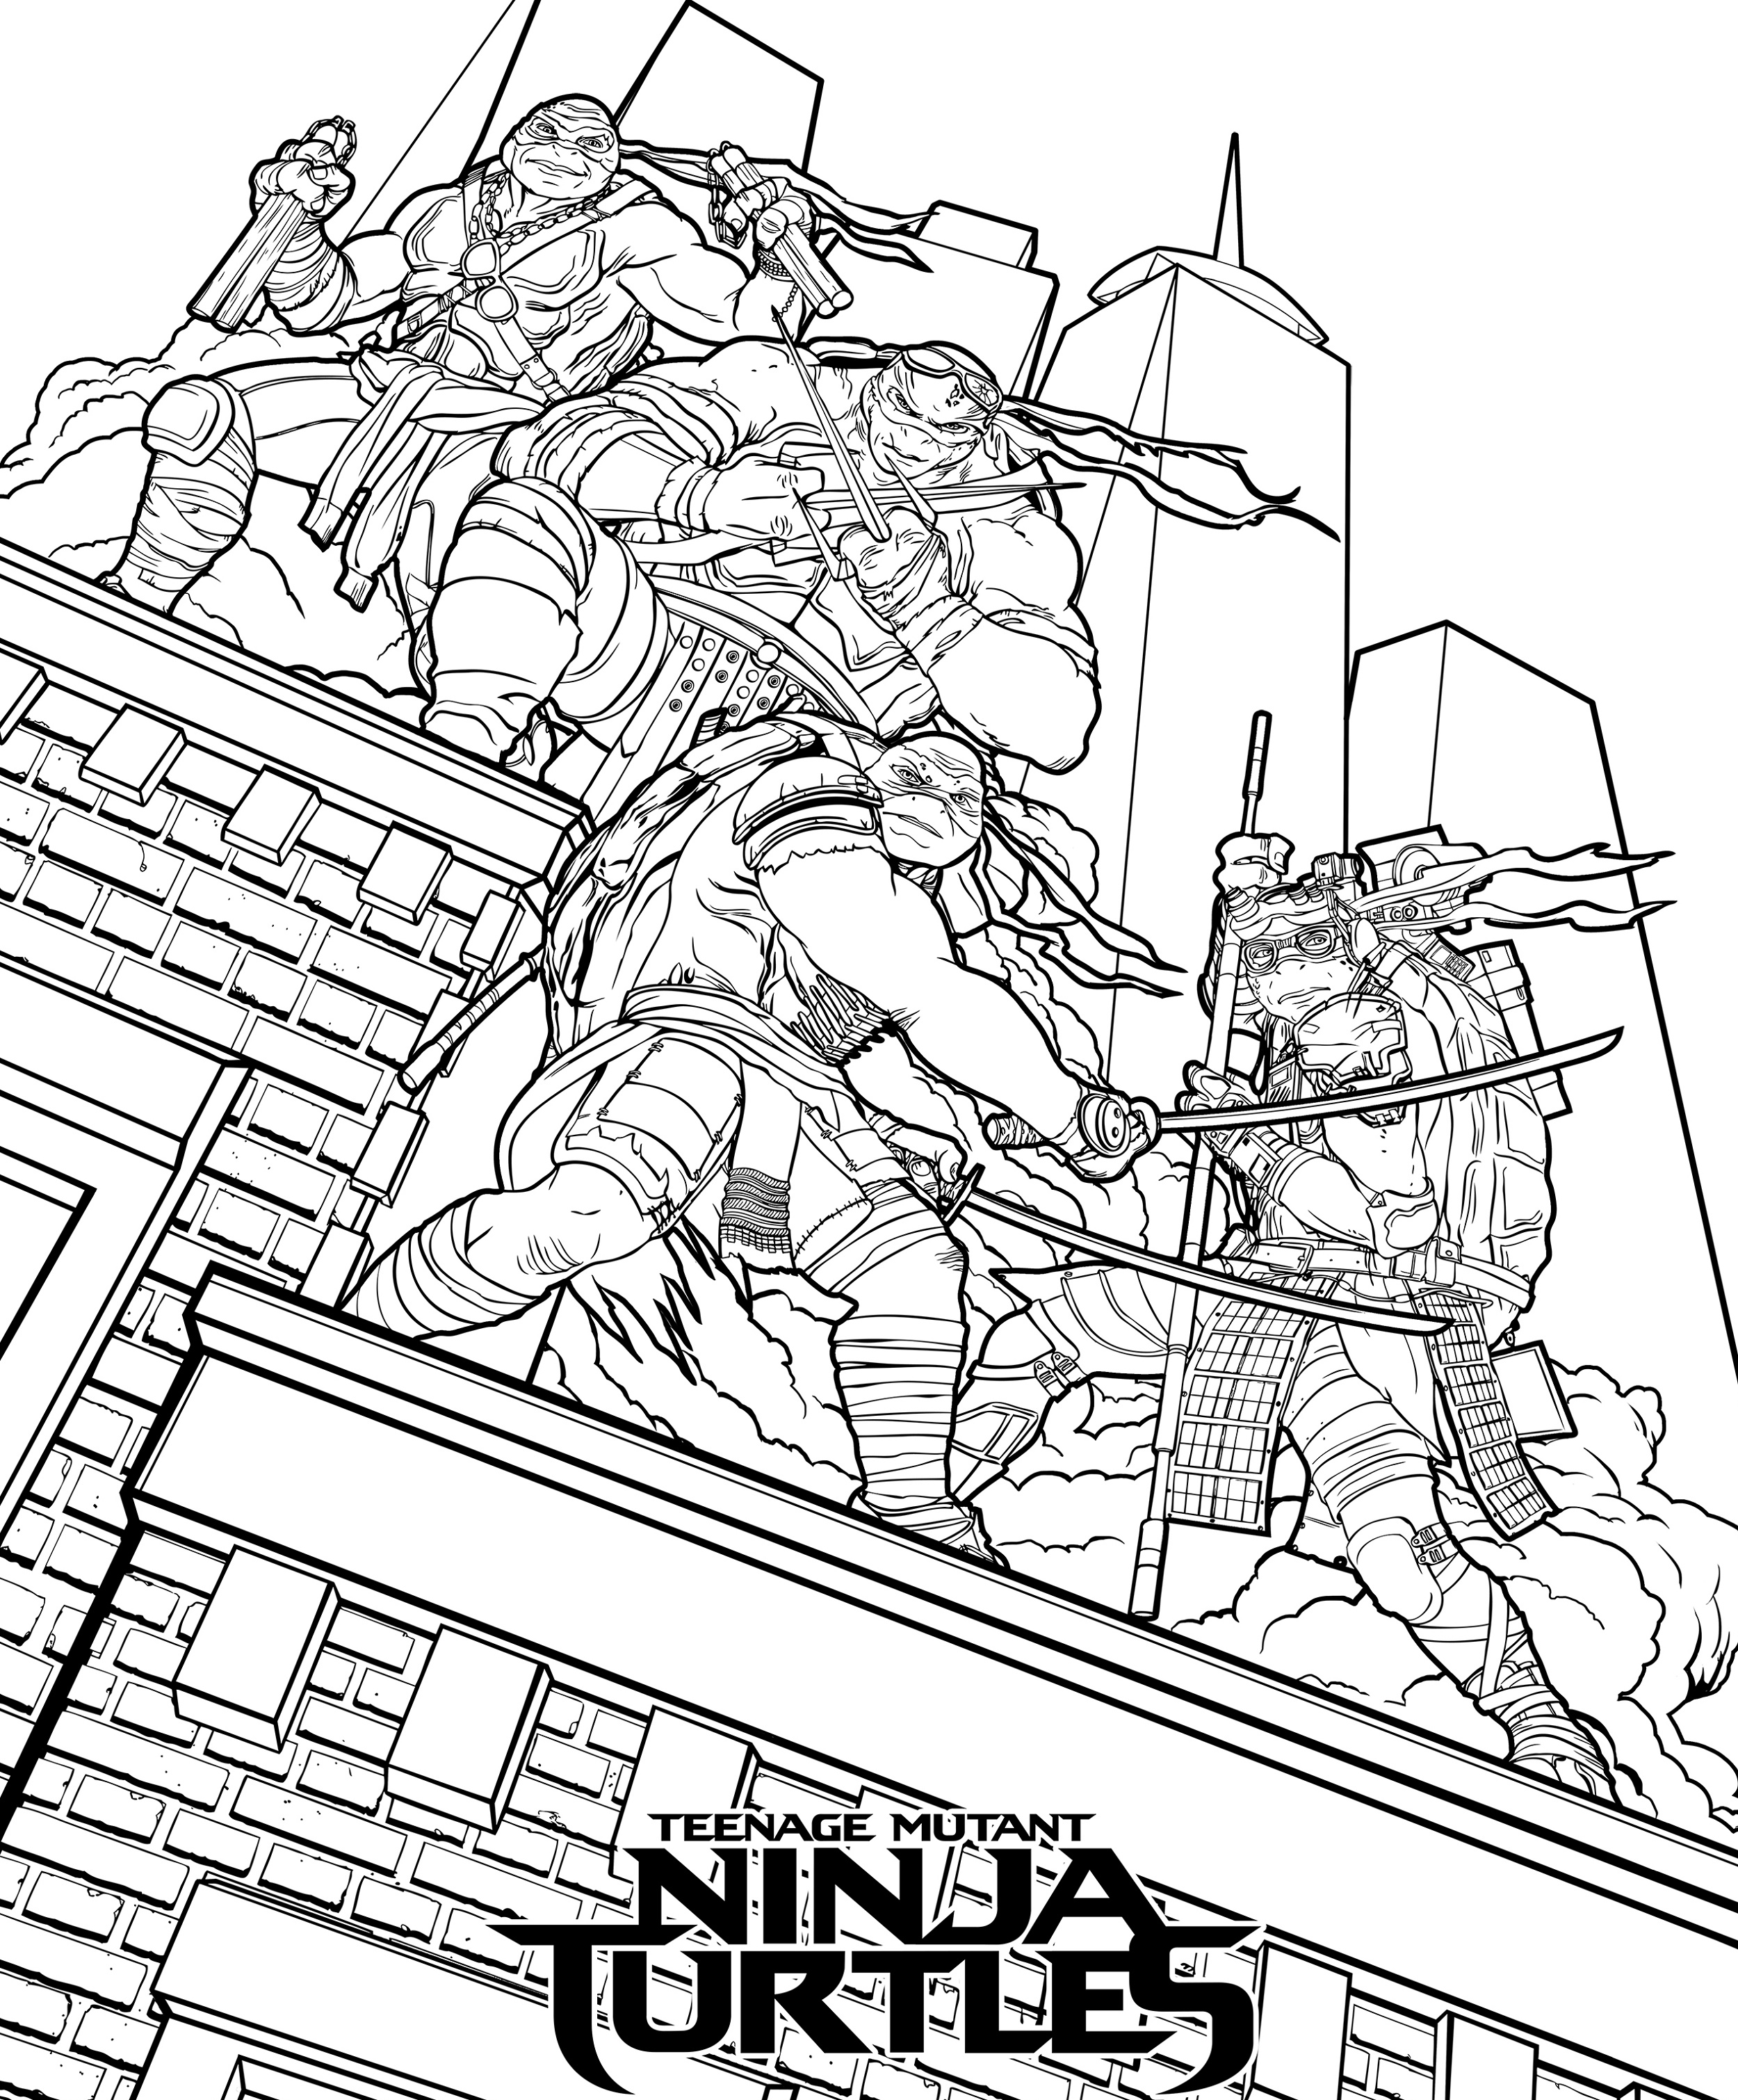 Ninja-Turtle-Coloring-Sheets-To-Print